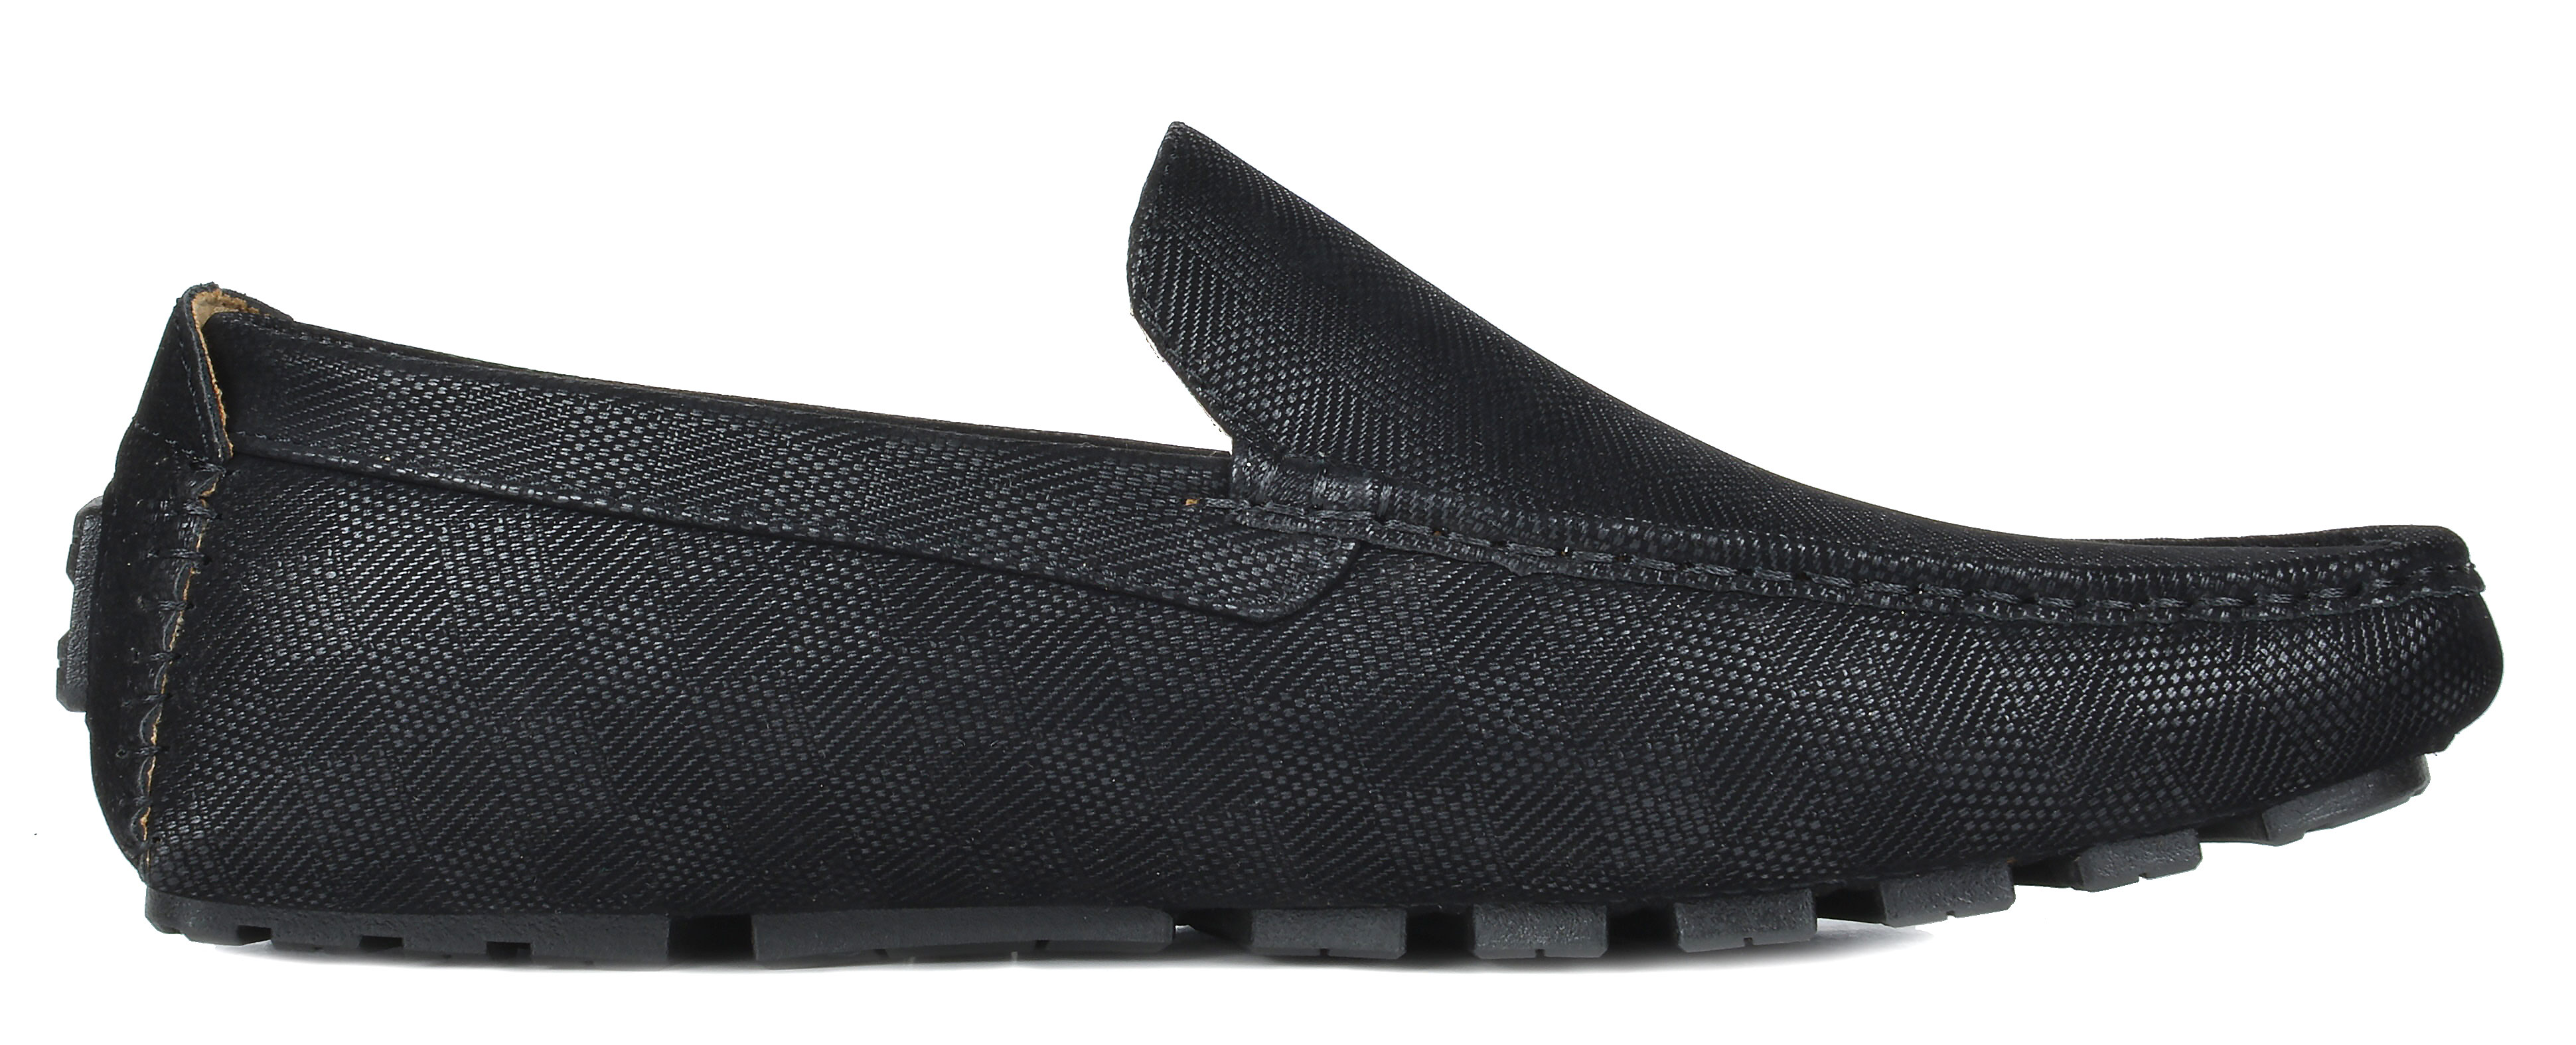 Bruno-Marc-Men-039-s-New-Classic-Fashion-Slip-on-Driving-Casual-Loafers-Boat-Shoes thumbnail 56